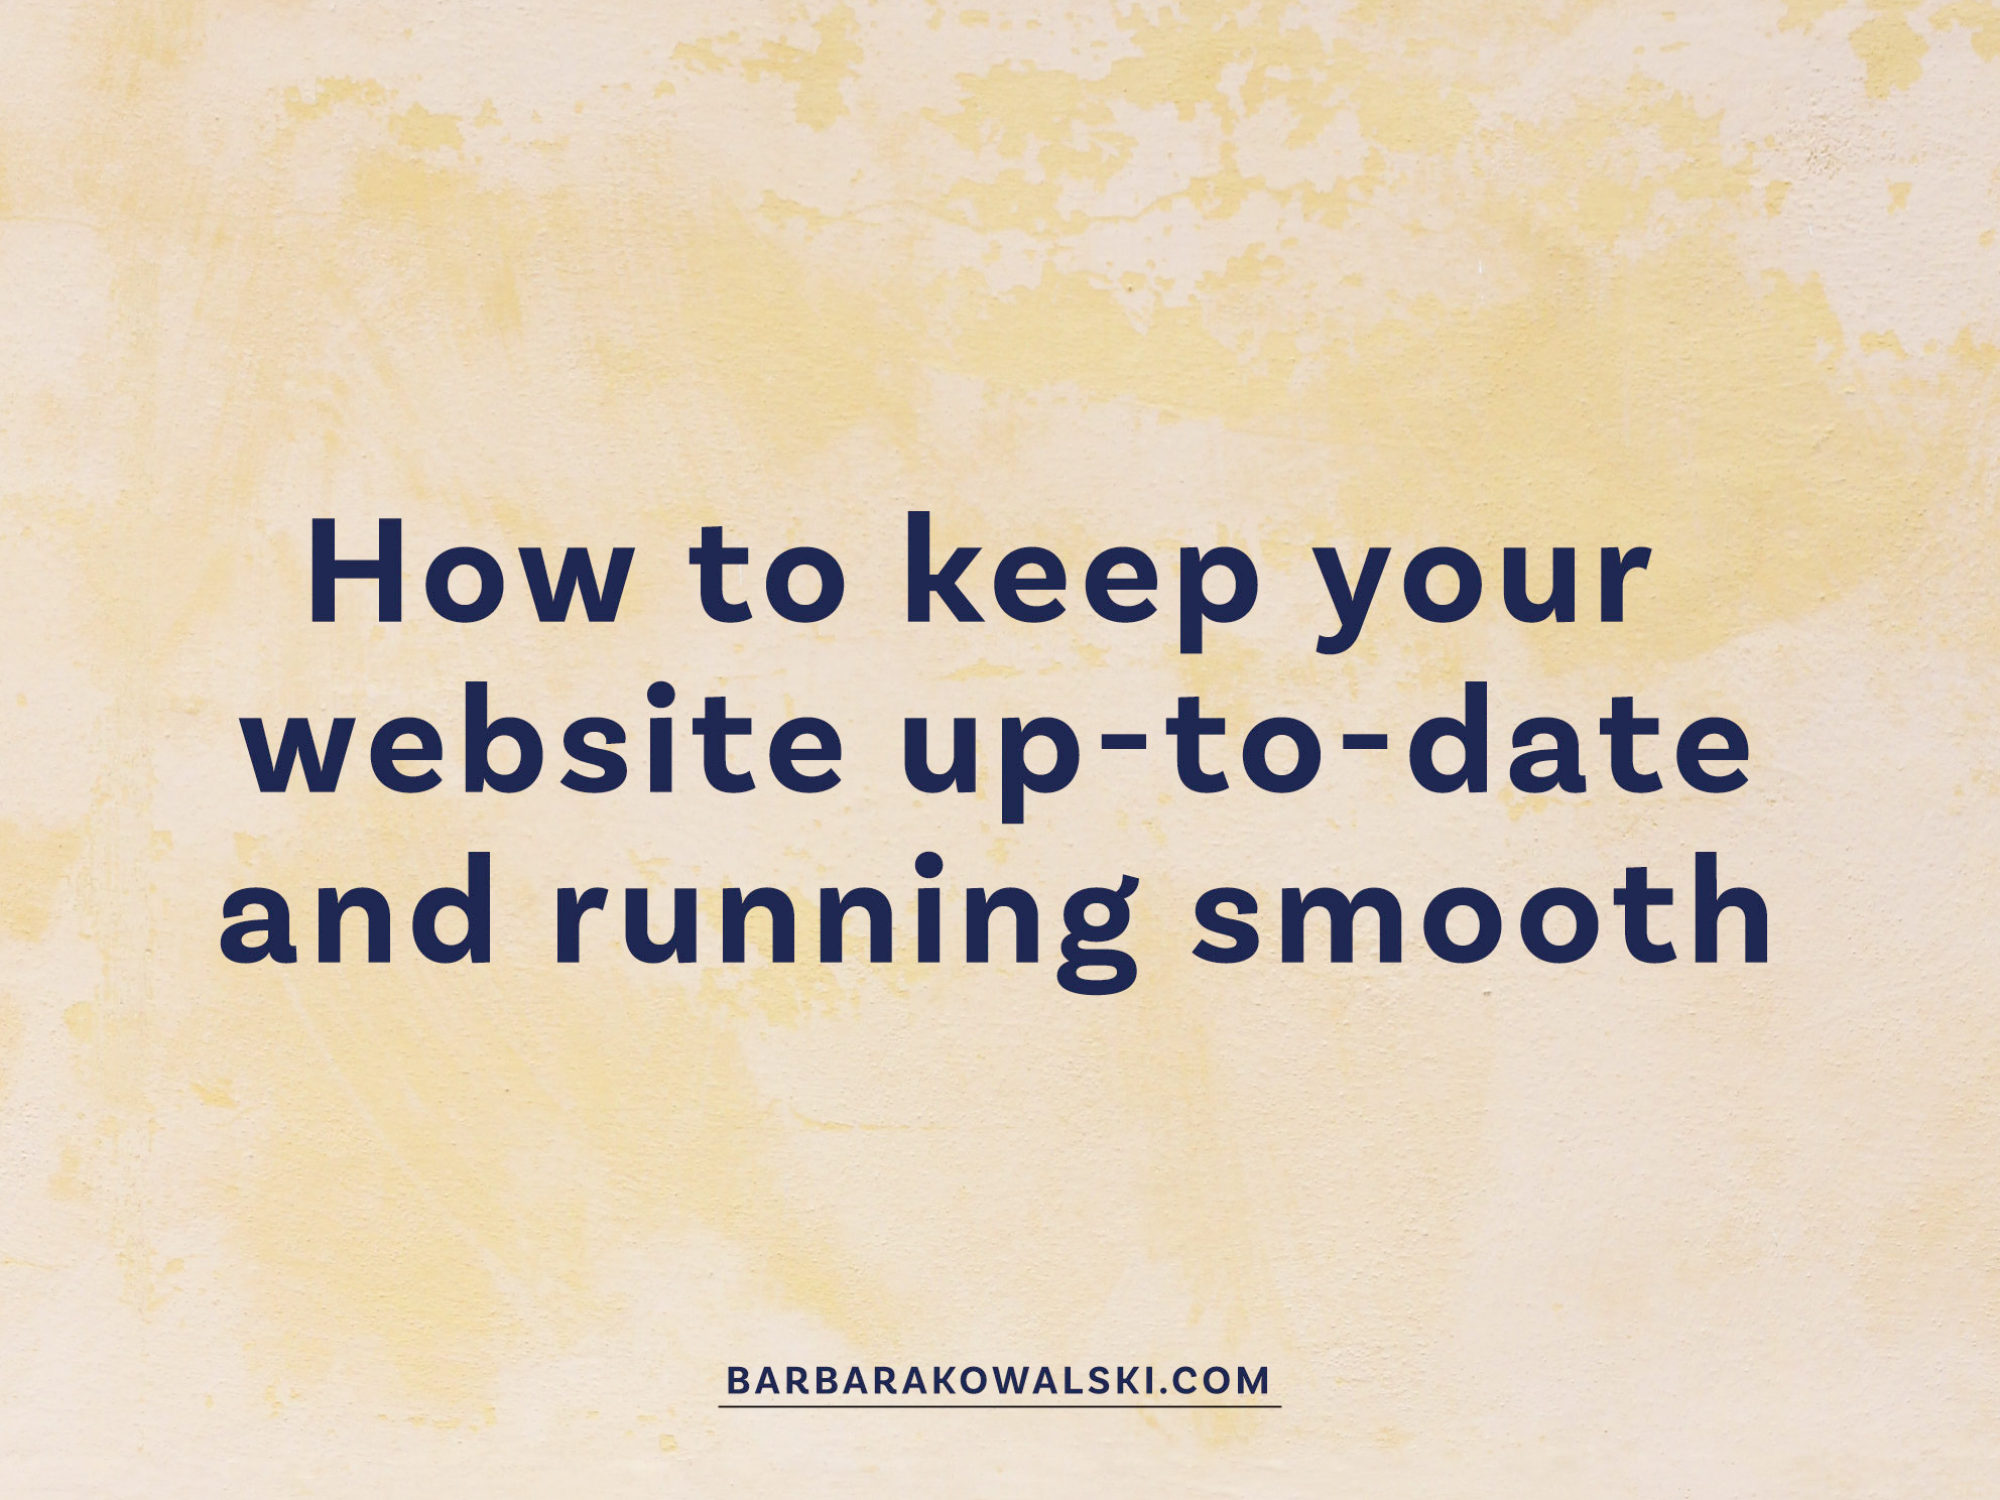 Quick tips on how to keep your website up-to-date and running smooth